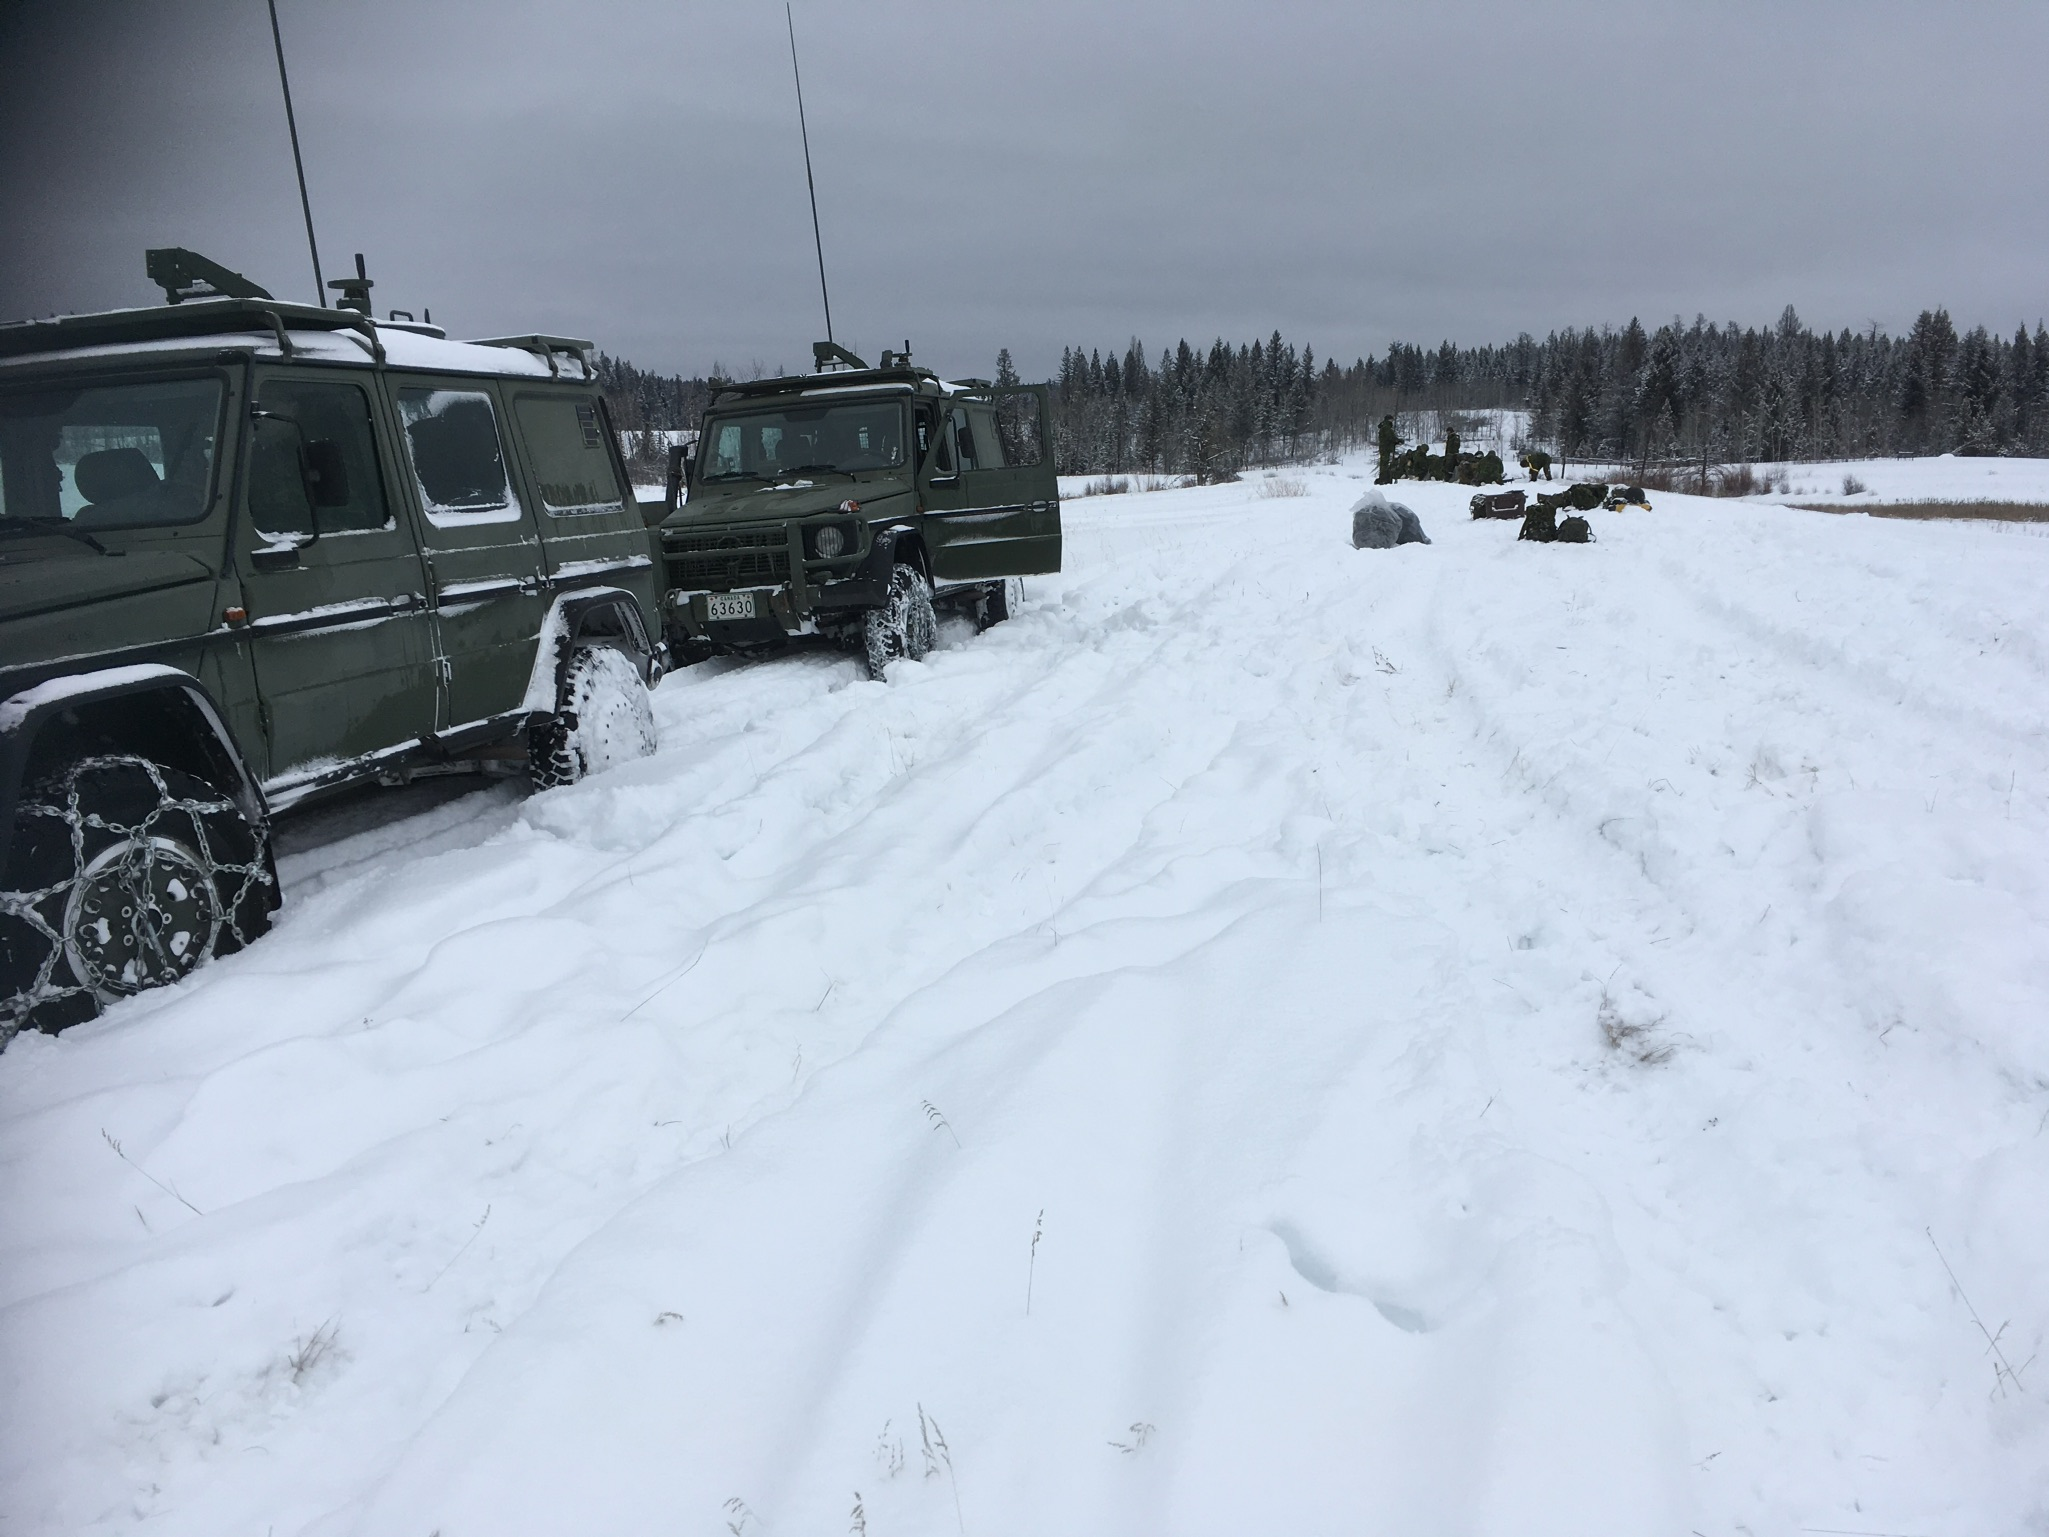 bcd s attend cougar link 2017 winter gun camp to confirm core